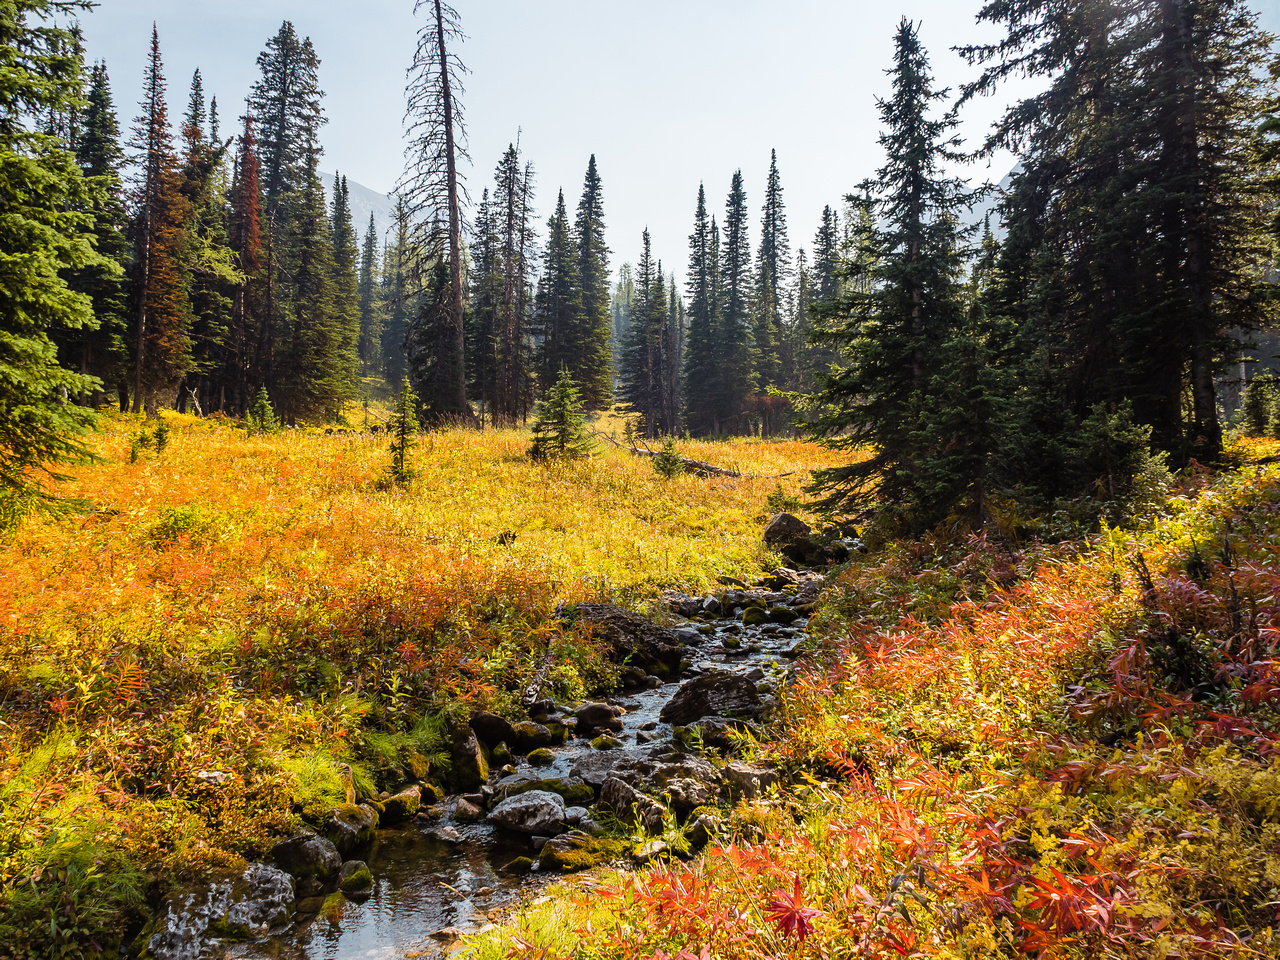 The meadows were on absolute fire with fall colors in the vegetation.